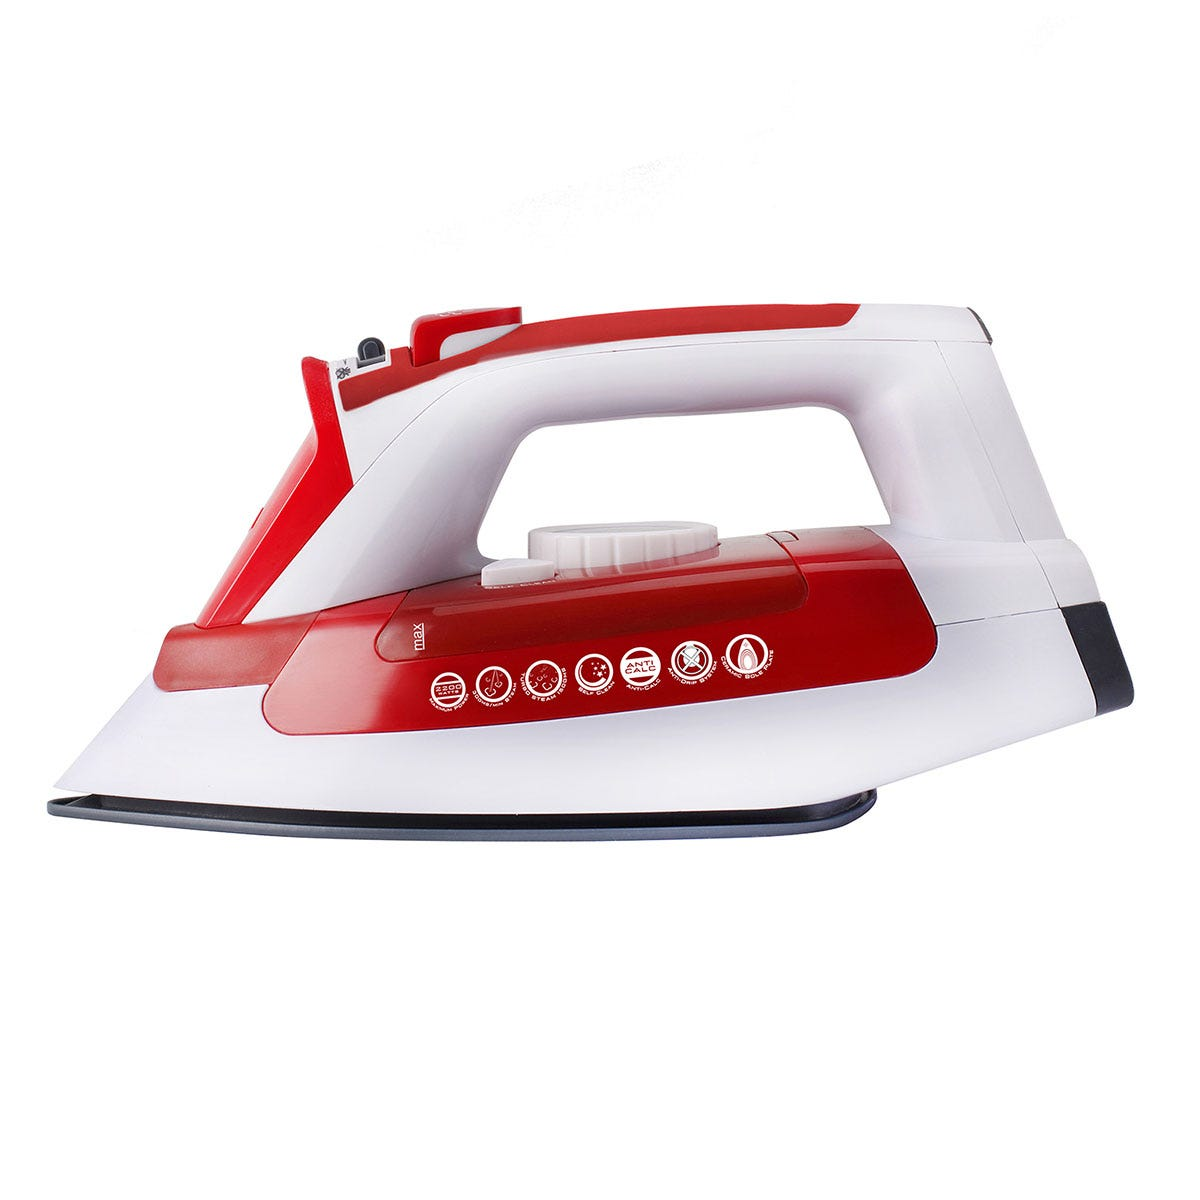 Hoover TIL2200001 IronJet 2200W Steam Iron - White and Red